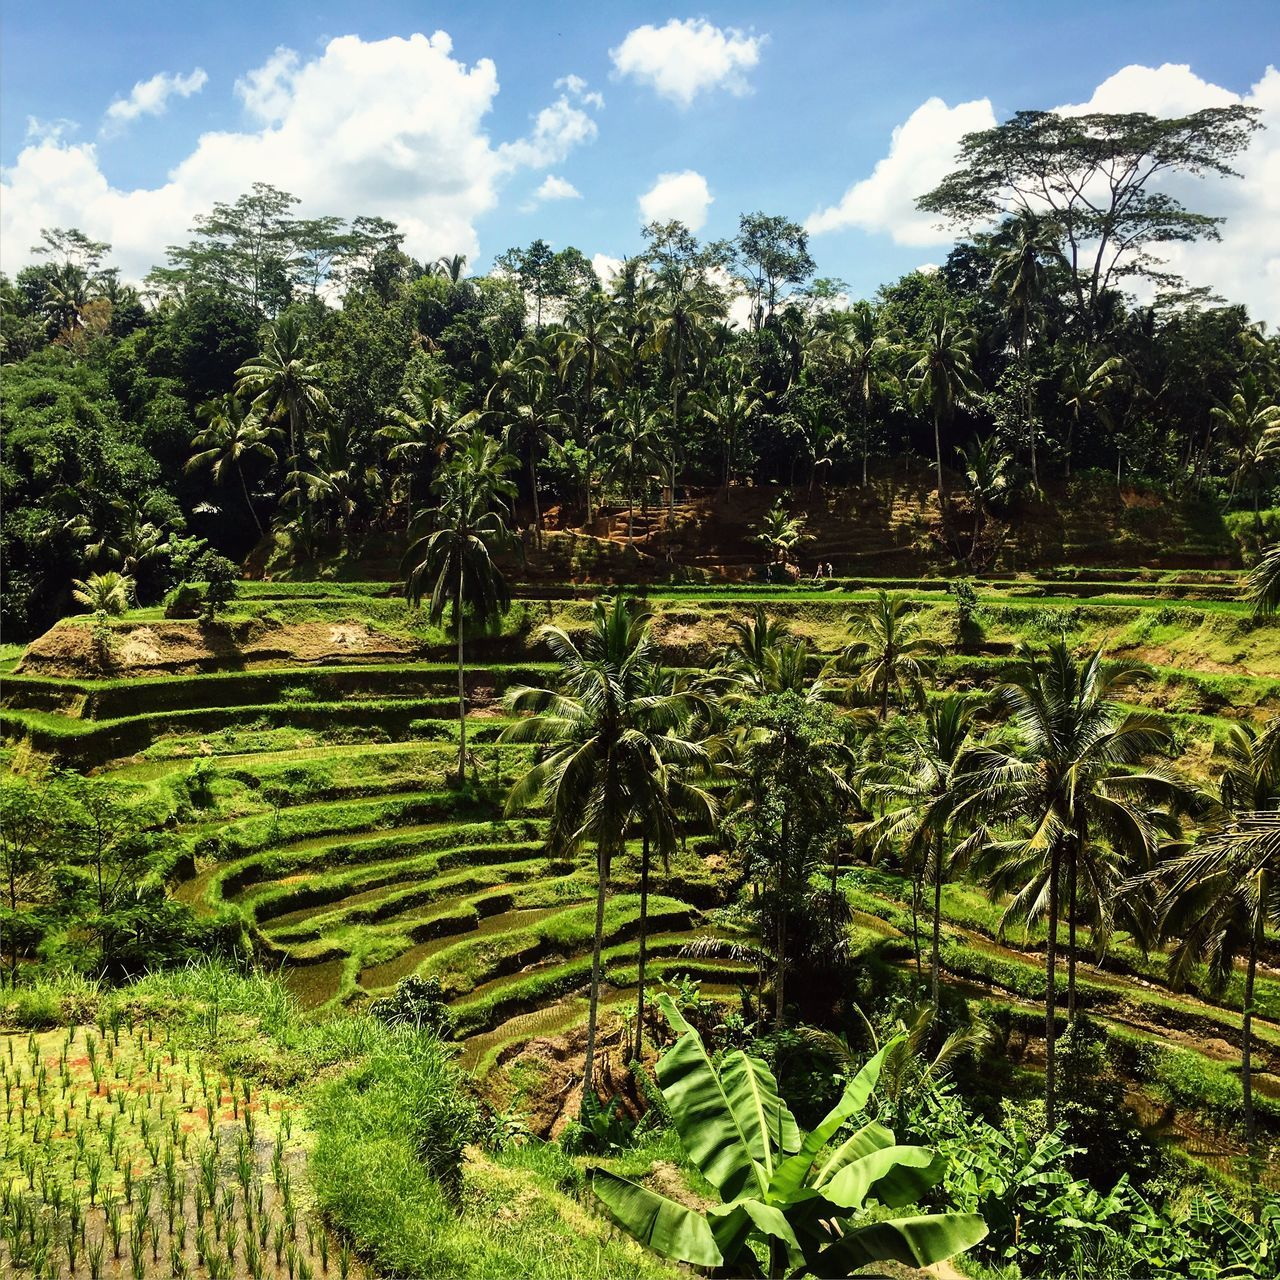 Tegalalang rice terace, ubud. Bali Rice Terraces Ubud Tegalalang INDONESIA Photography Nature Green Color Tree Terraced Field Beauty In Nature Sky Travel Destinations